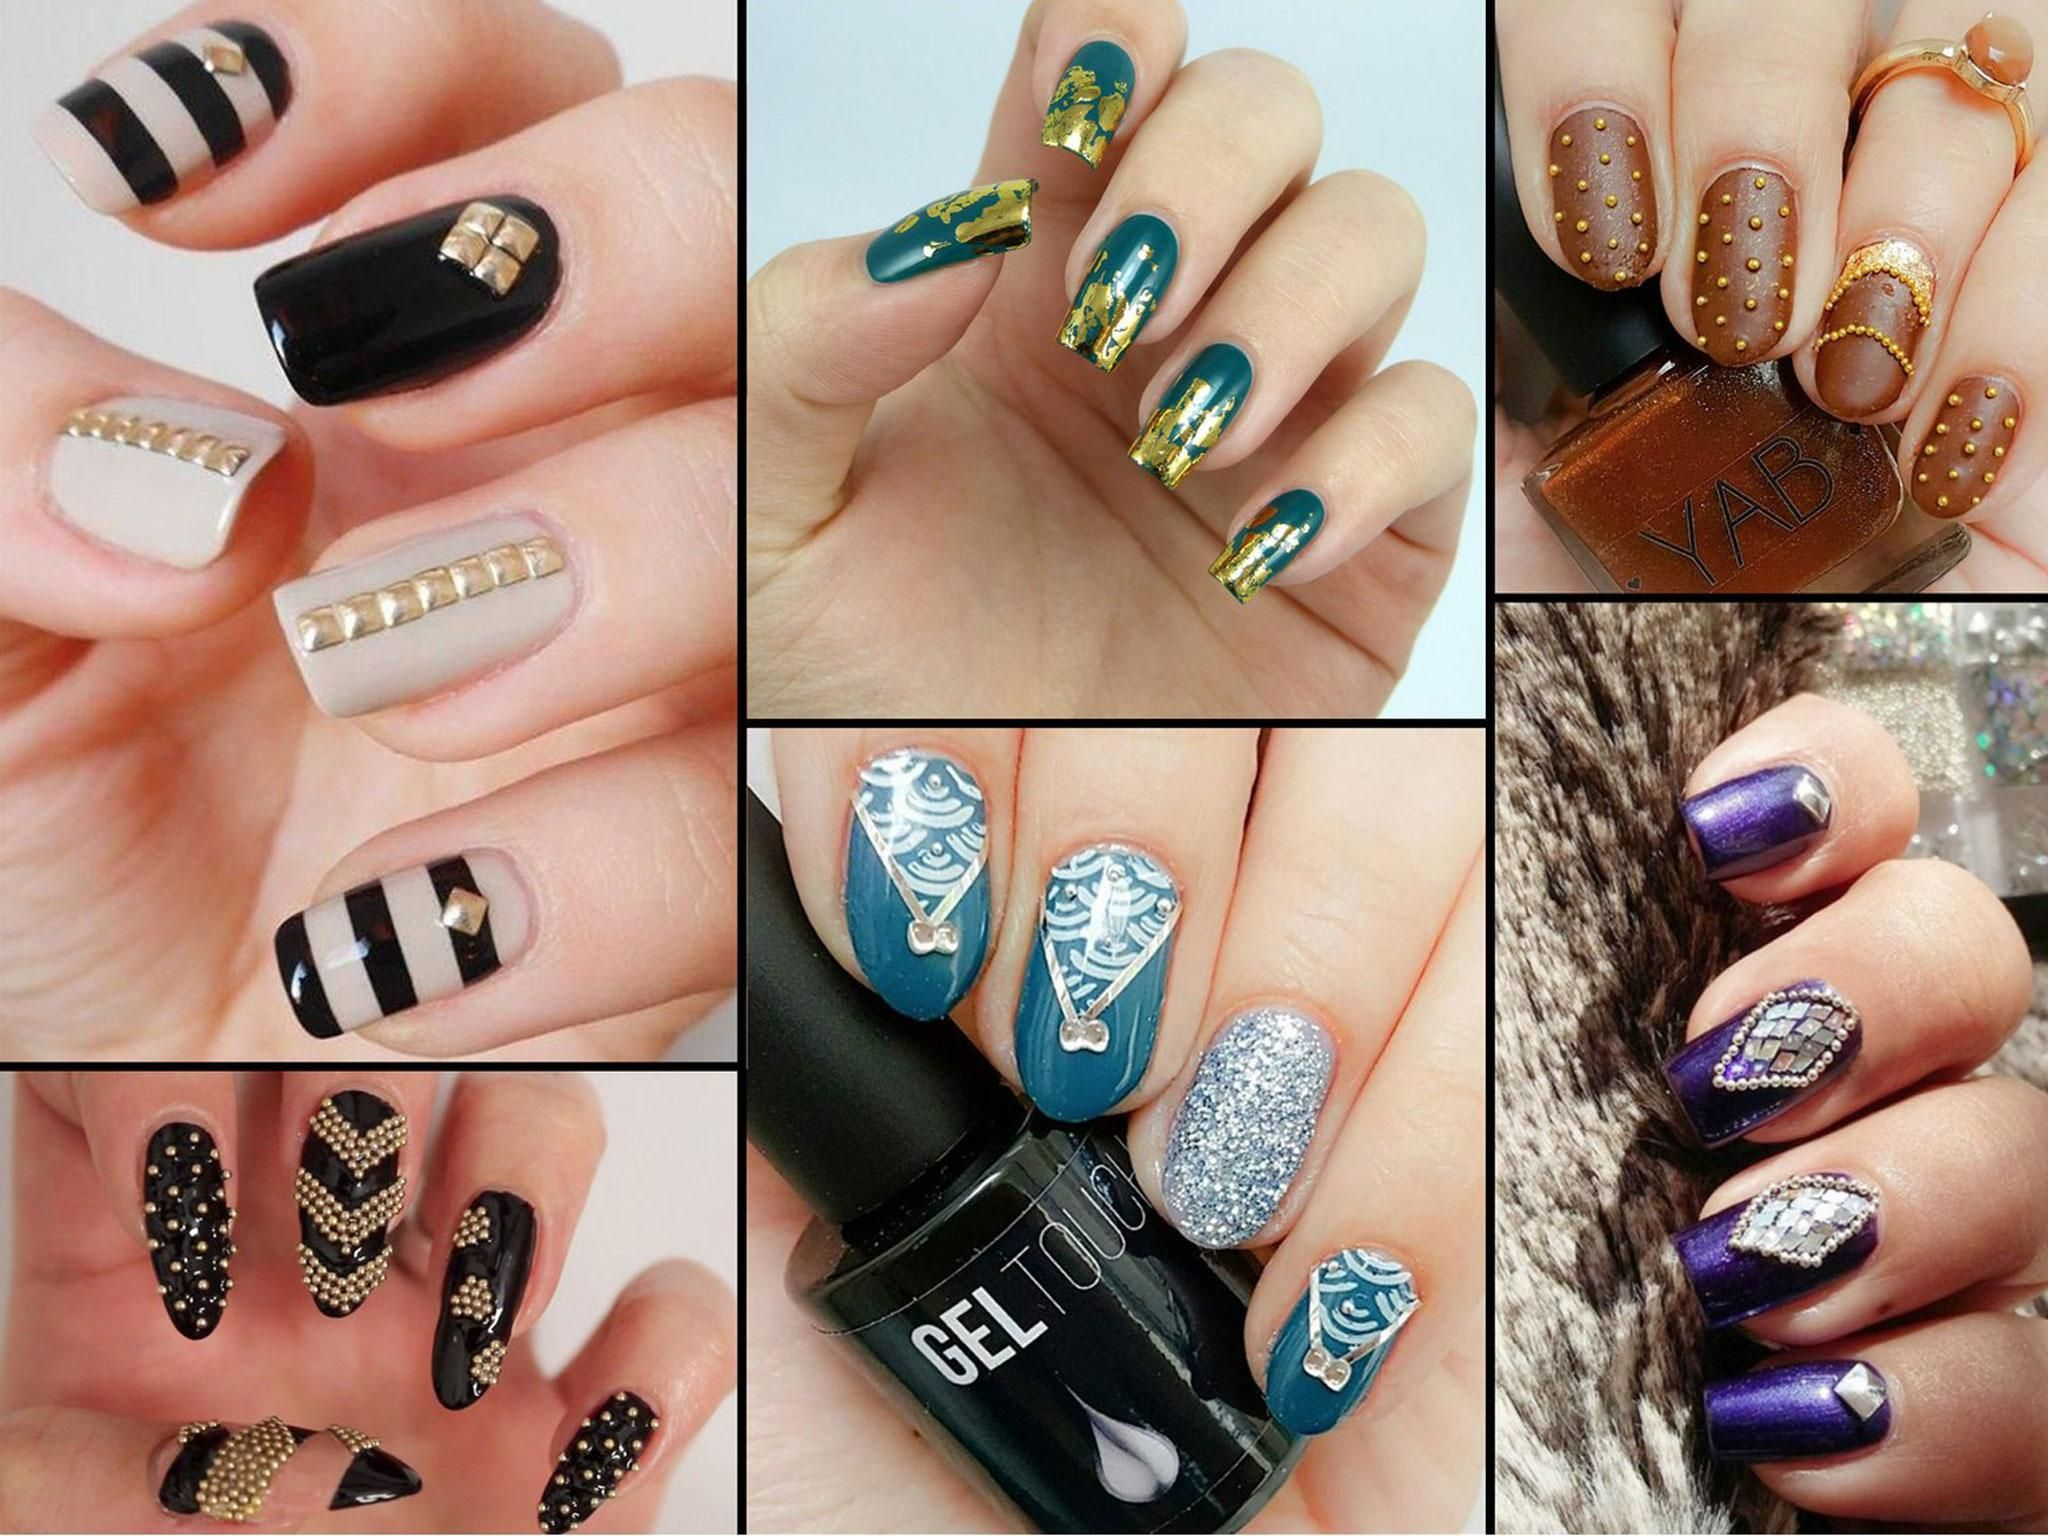 9 Best Home Gel Nail Kits For A Diy Manicure That S Salon Quality Gel Nail Kit Home Gel Nail Kit Gel Nails